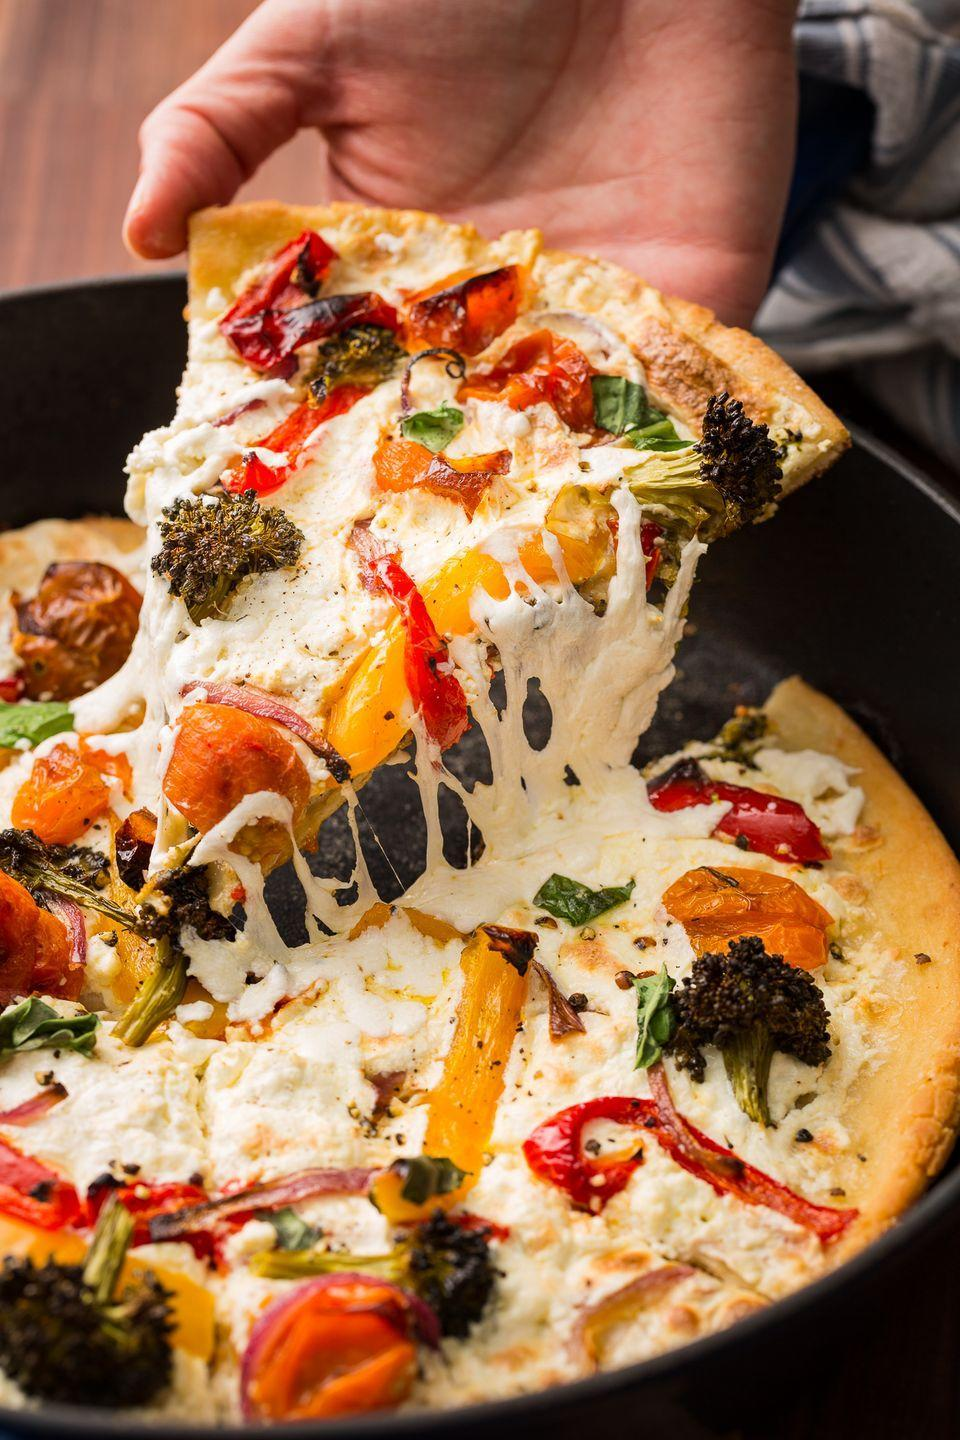 "<p>Veggies on pizza are better than any salad.</p><p>Get the recipe from <a href=""https://www.delish.com/cooking/recipe-ideas/recipes/a46837/primavera-skillet-pizza-recipe/"" rel=""nofollow noopener"" target=""_blank"" data-ylk=""slk:Delish"" class=""link rapid-noclick-resp"">Delish</a>.</p>"